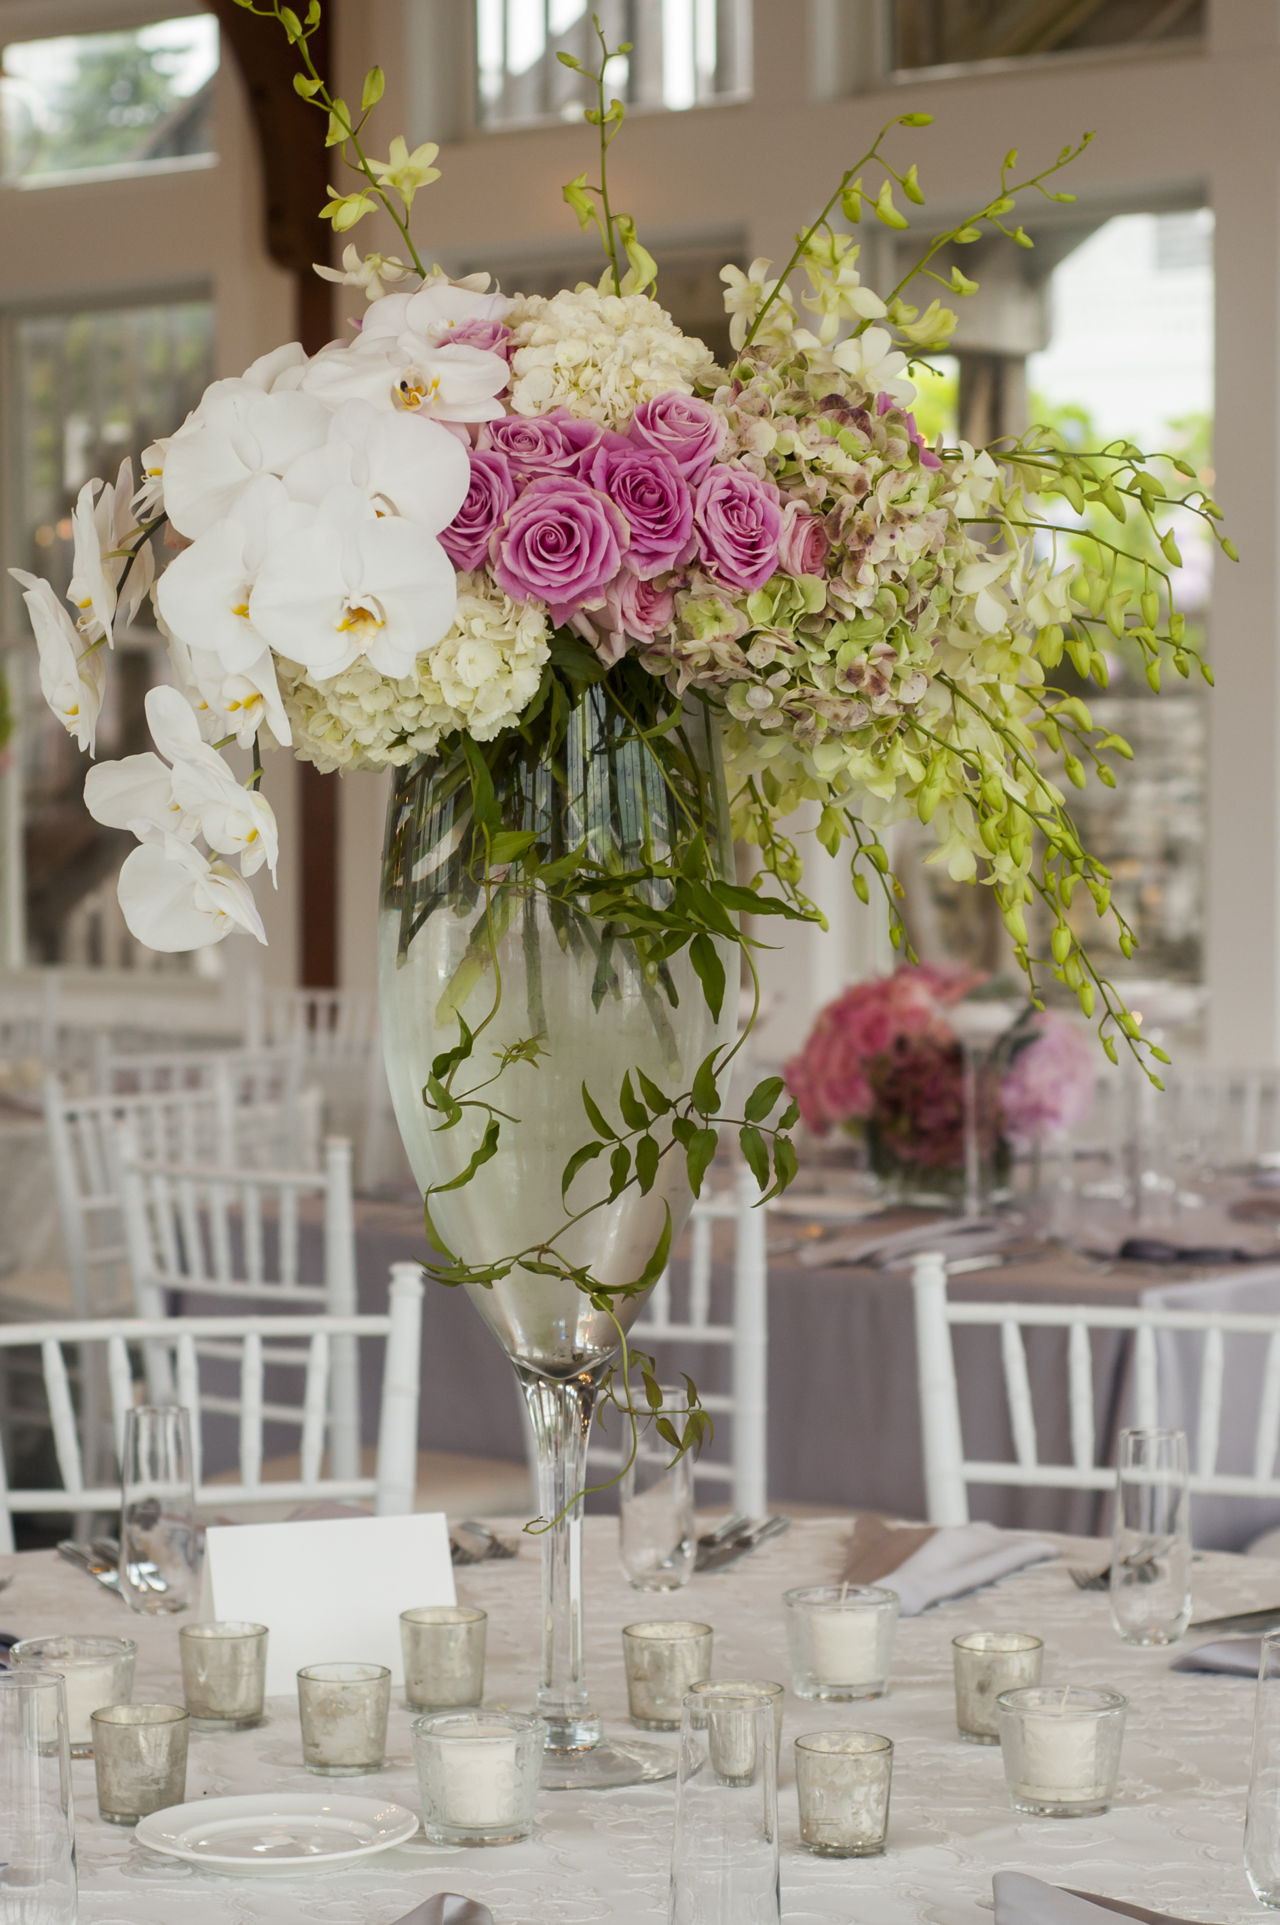 Rehearsal Dinner Centerpieces  The Most Awesome Rehearsal Dinner Centerpieces of ALL Time